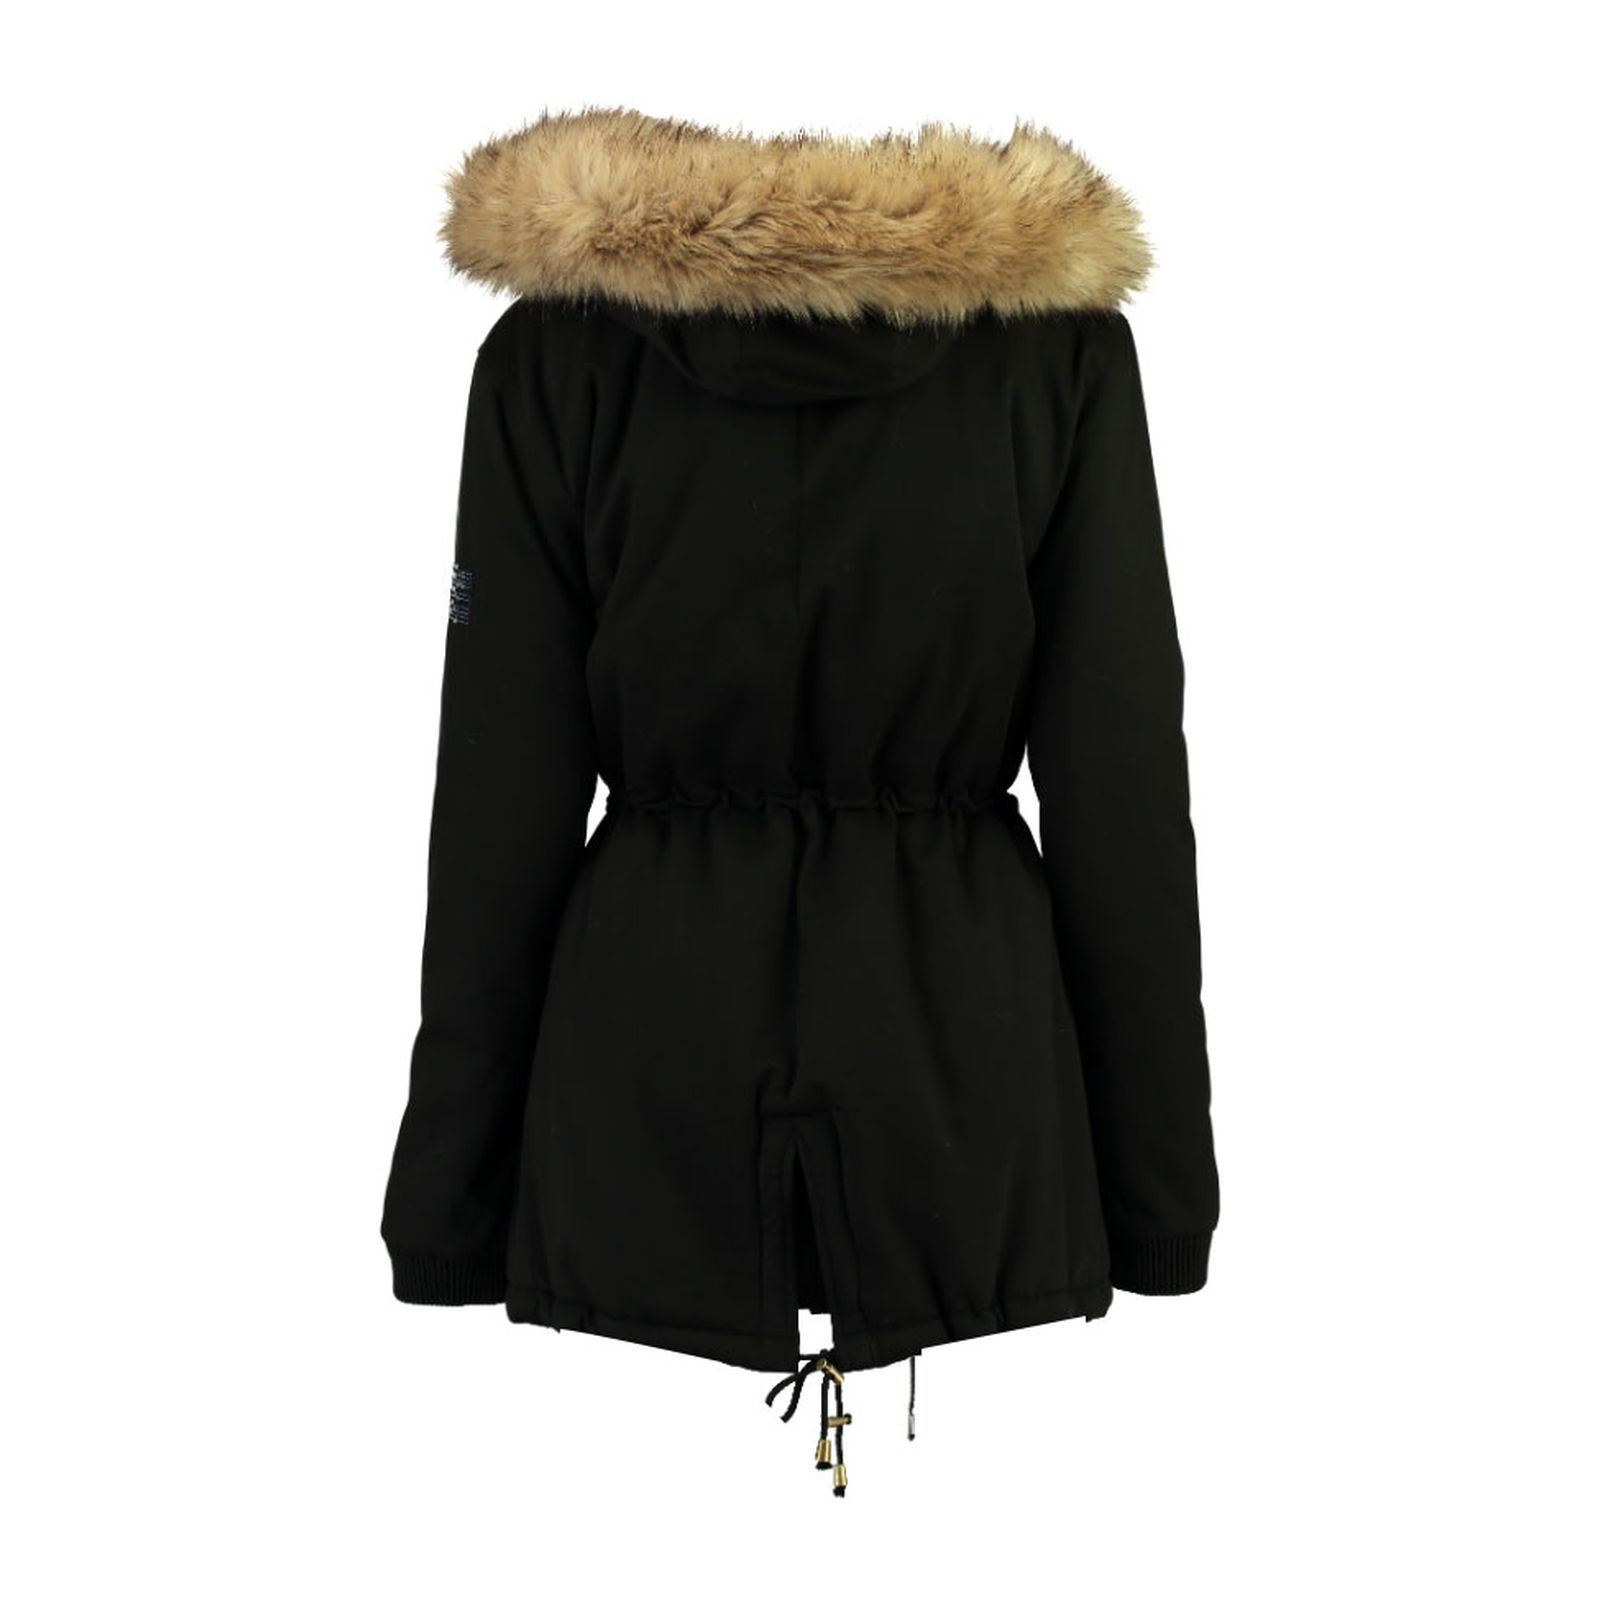 Geographical Parka Geographical Noir Norway Norway Noir Noir Parka Geographical Parka Norway Parka Geographical Noir Norway Geographical Rnqwf6Wg6U